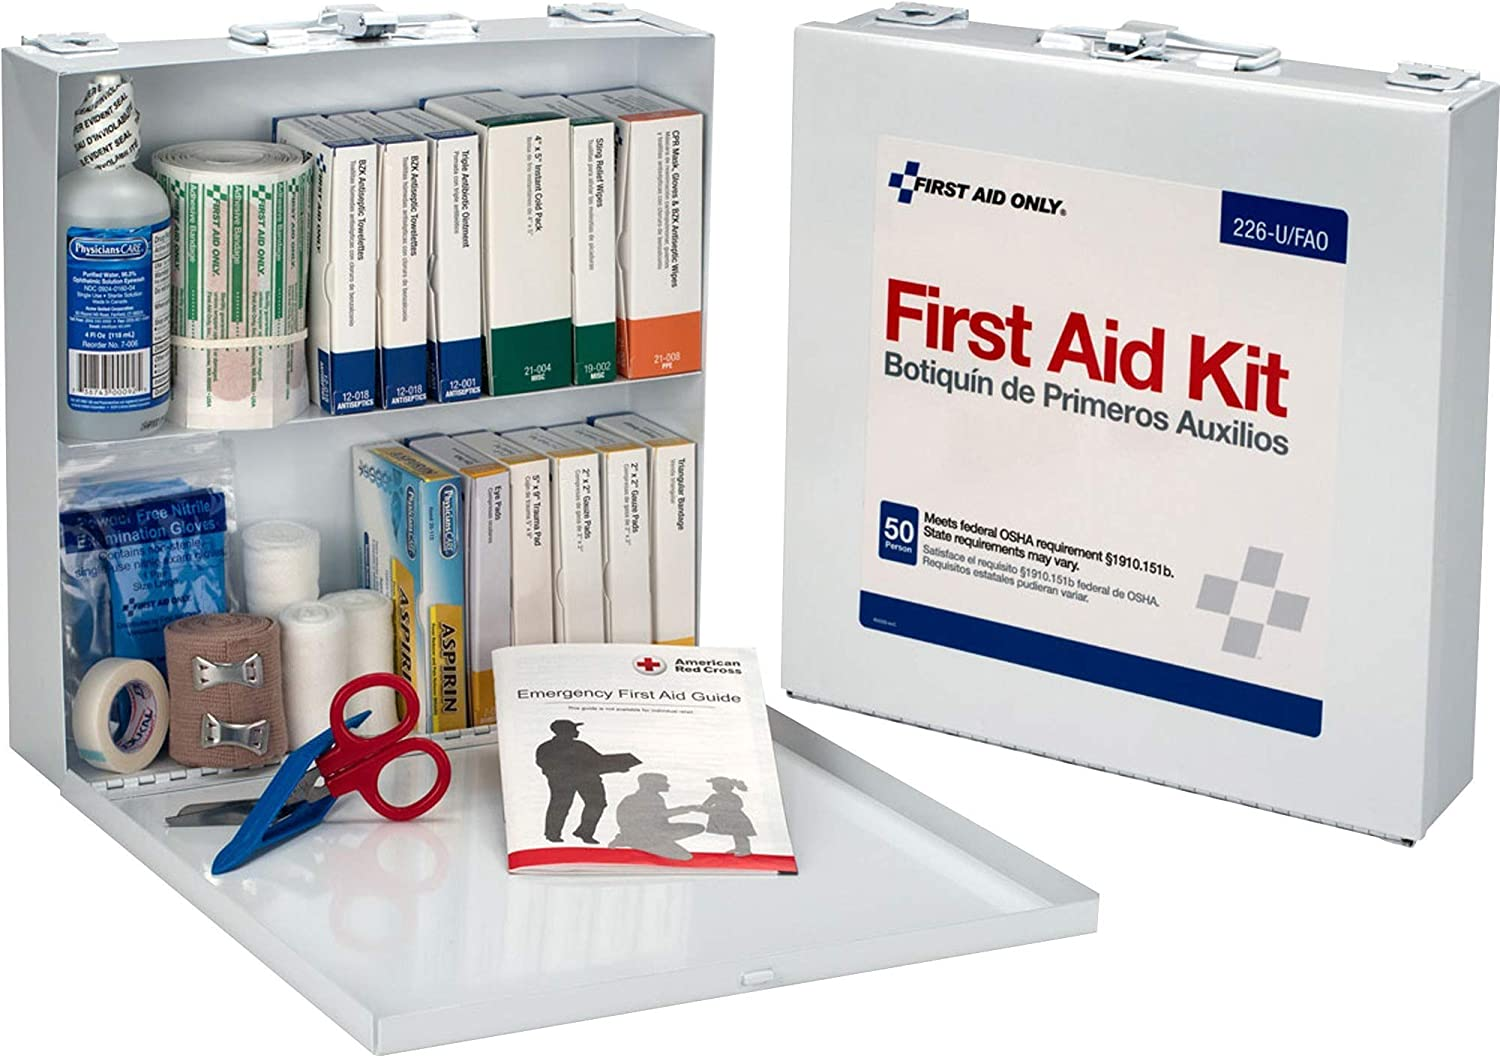 List price First Aid Only Bulk Kit Quantity limited 226-U FAO Metal Case